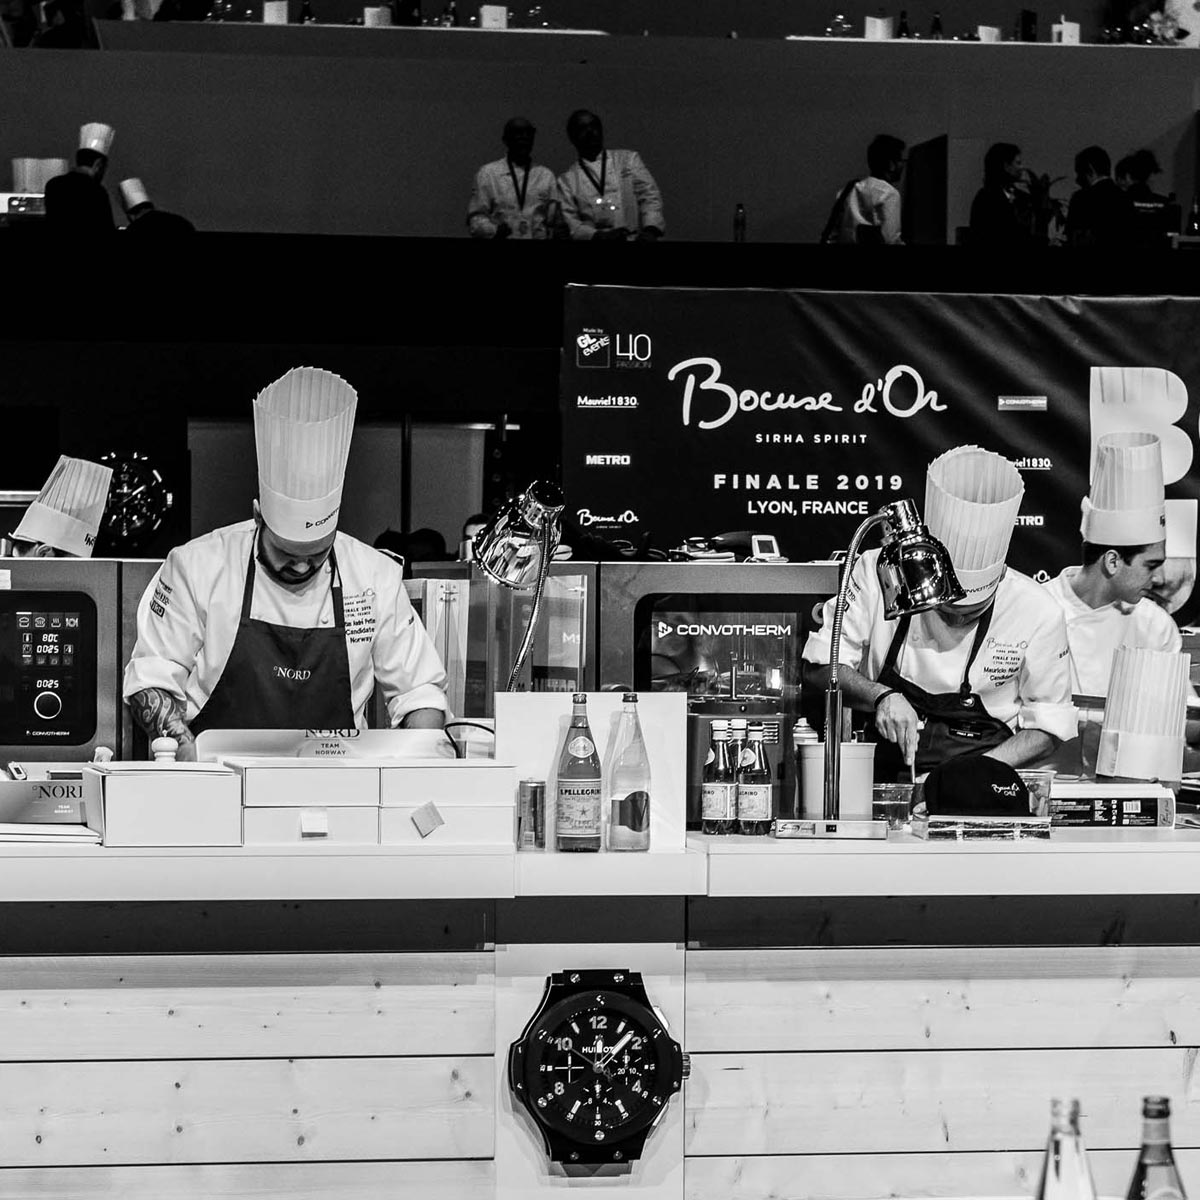 La Cote des Montres : Photo - Hublot chronométreur officiel du Bocuse d'Or 2019